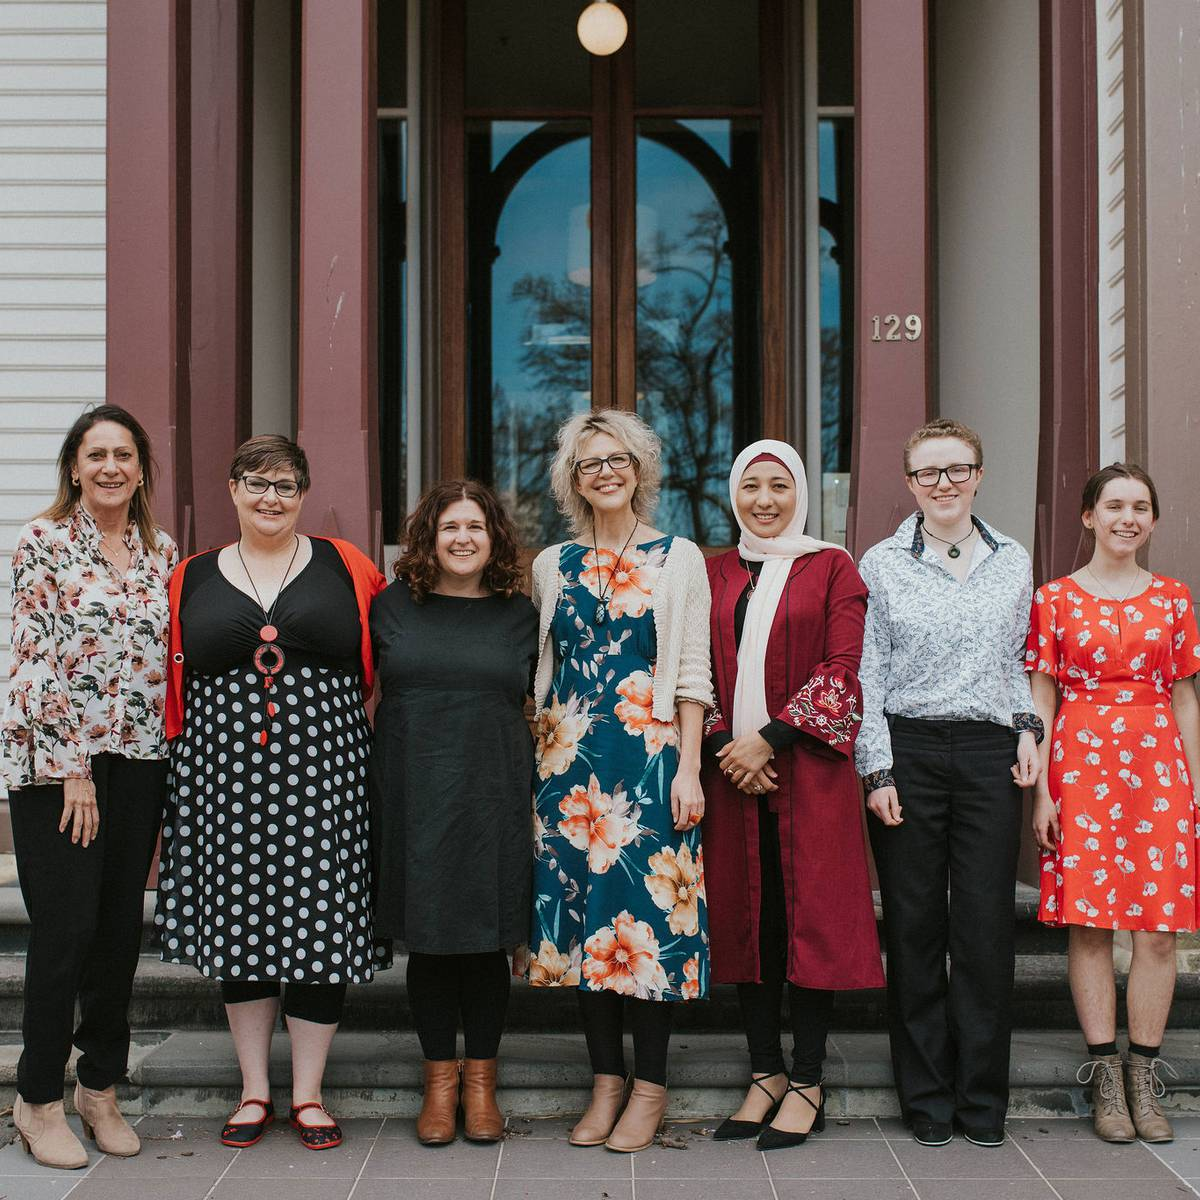 The Kate Sheppard Women's Fund